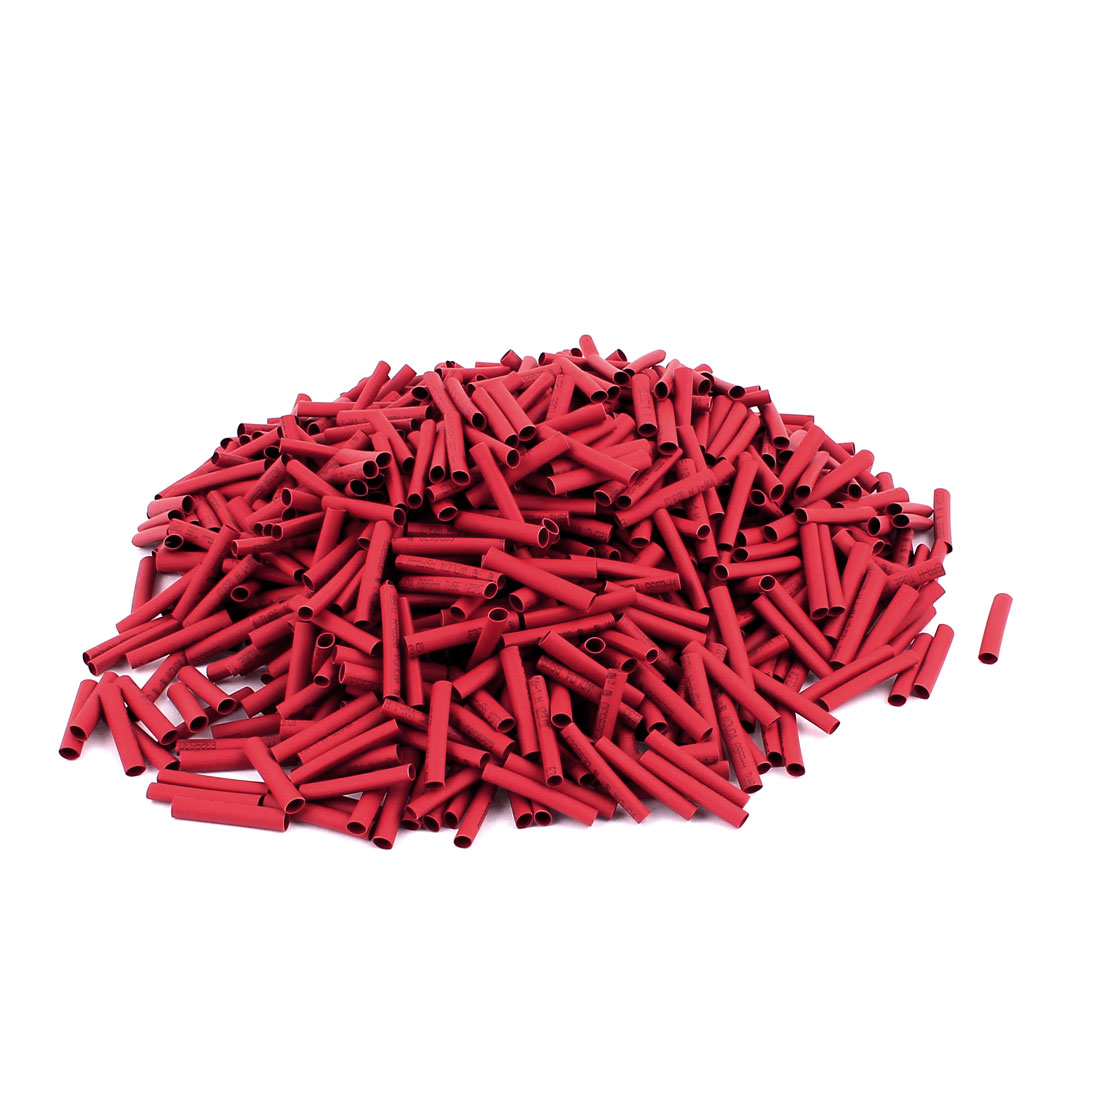 25mm Long Electrical Connection Cable Sleeve Heat Shrink Wrap Tubing Red 1000Pcs